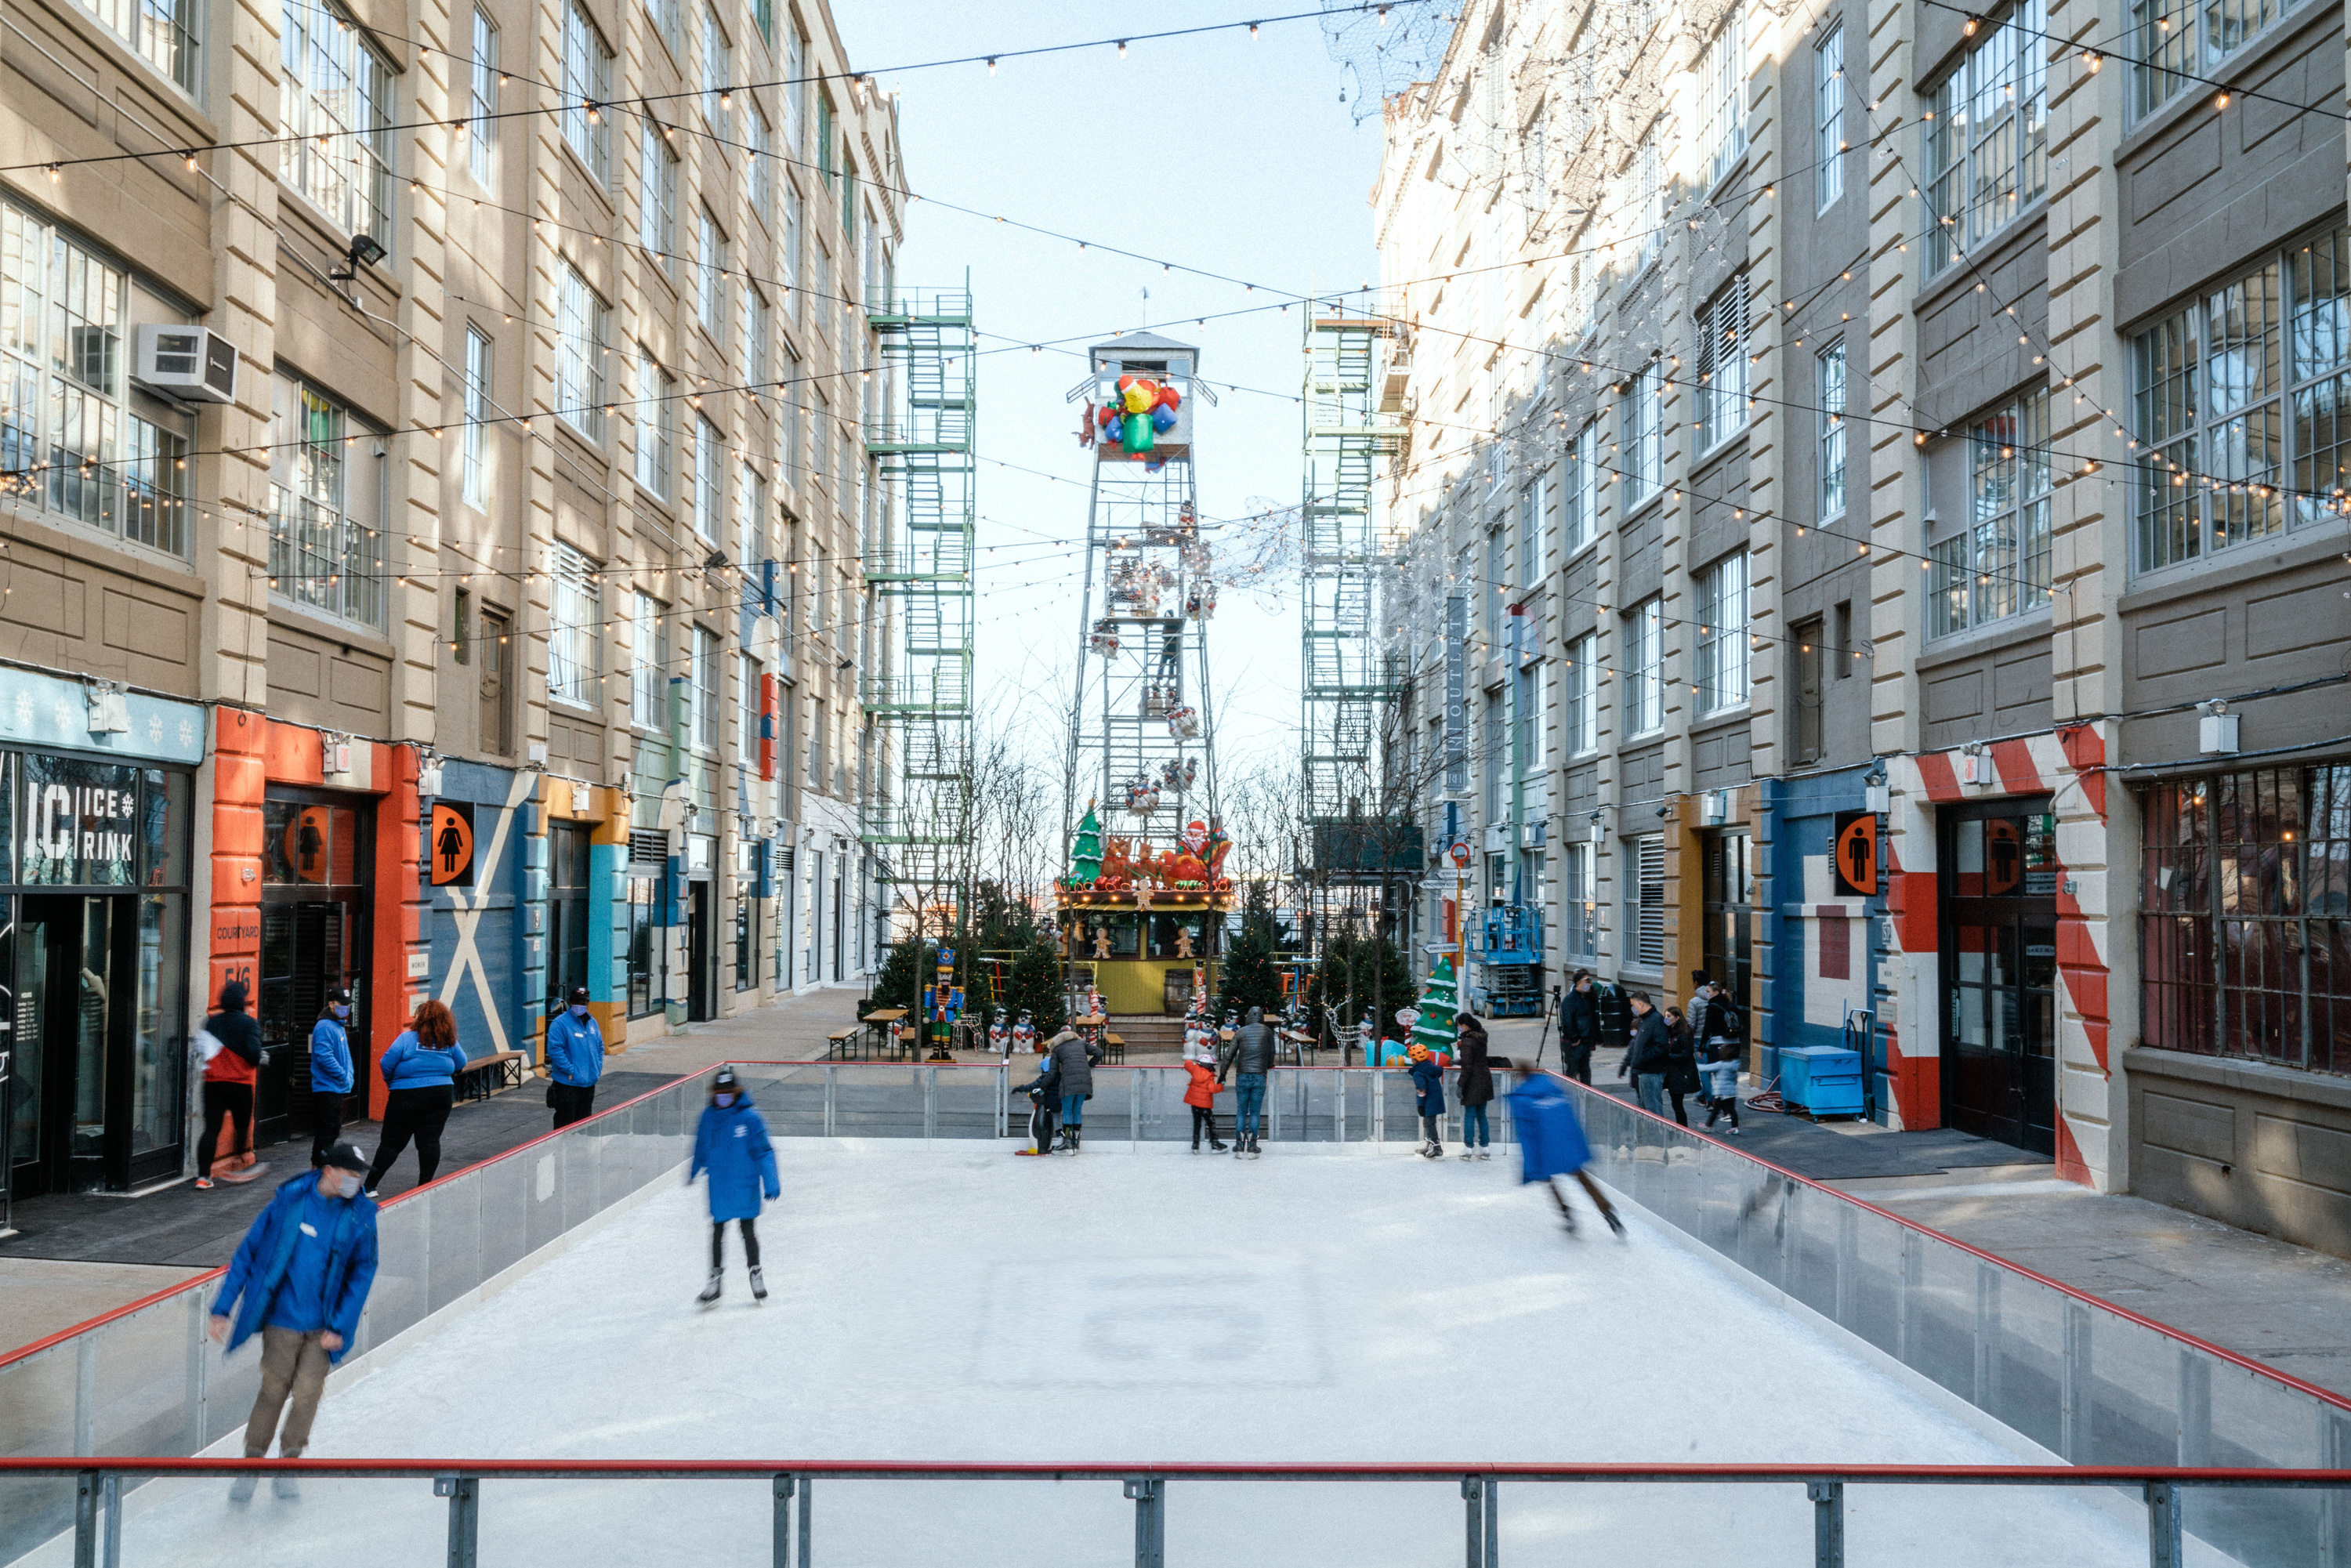 Industry city ice skating rink